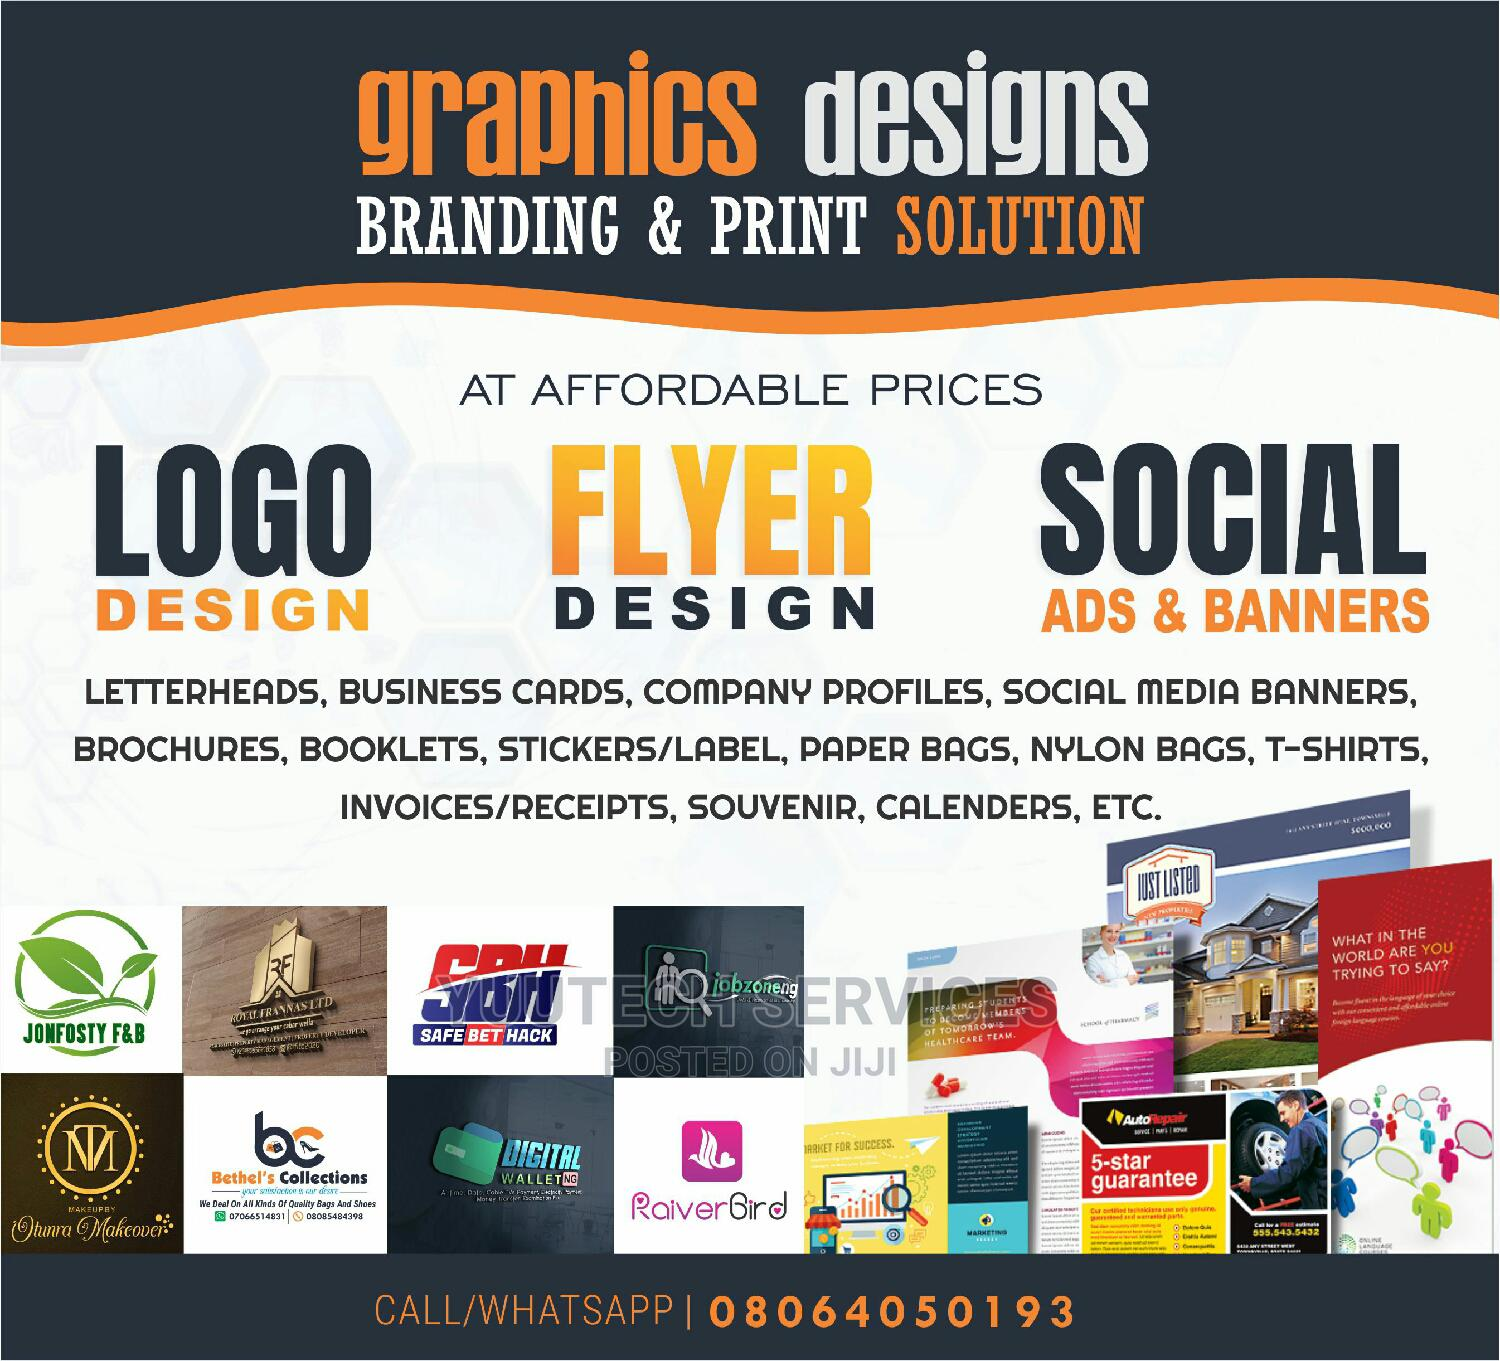 Logos and Graphics Design Services